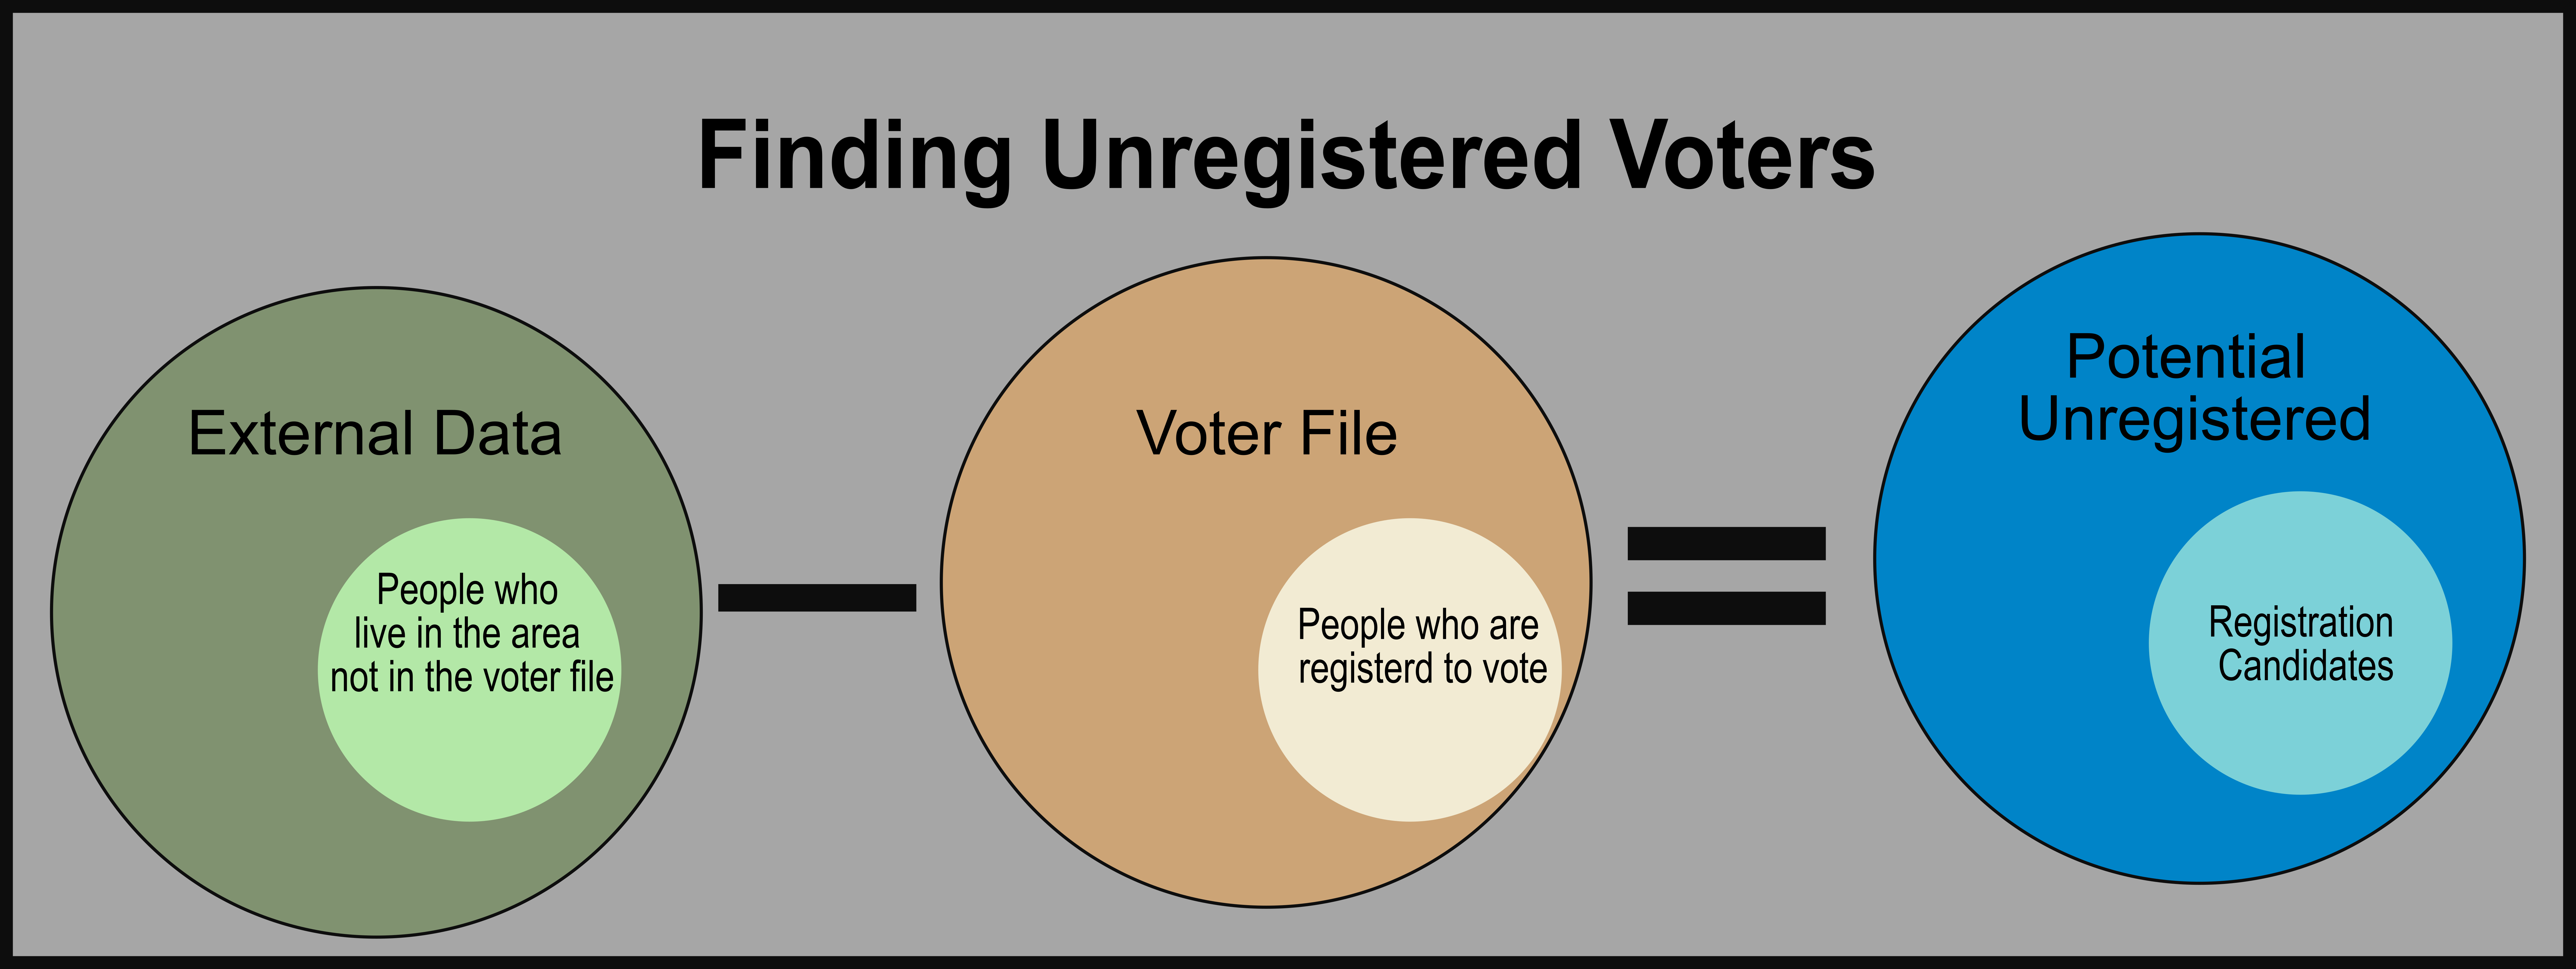 Finding people living in an area but not in the Voter File and registered to vote